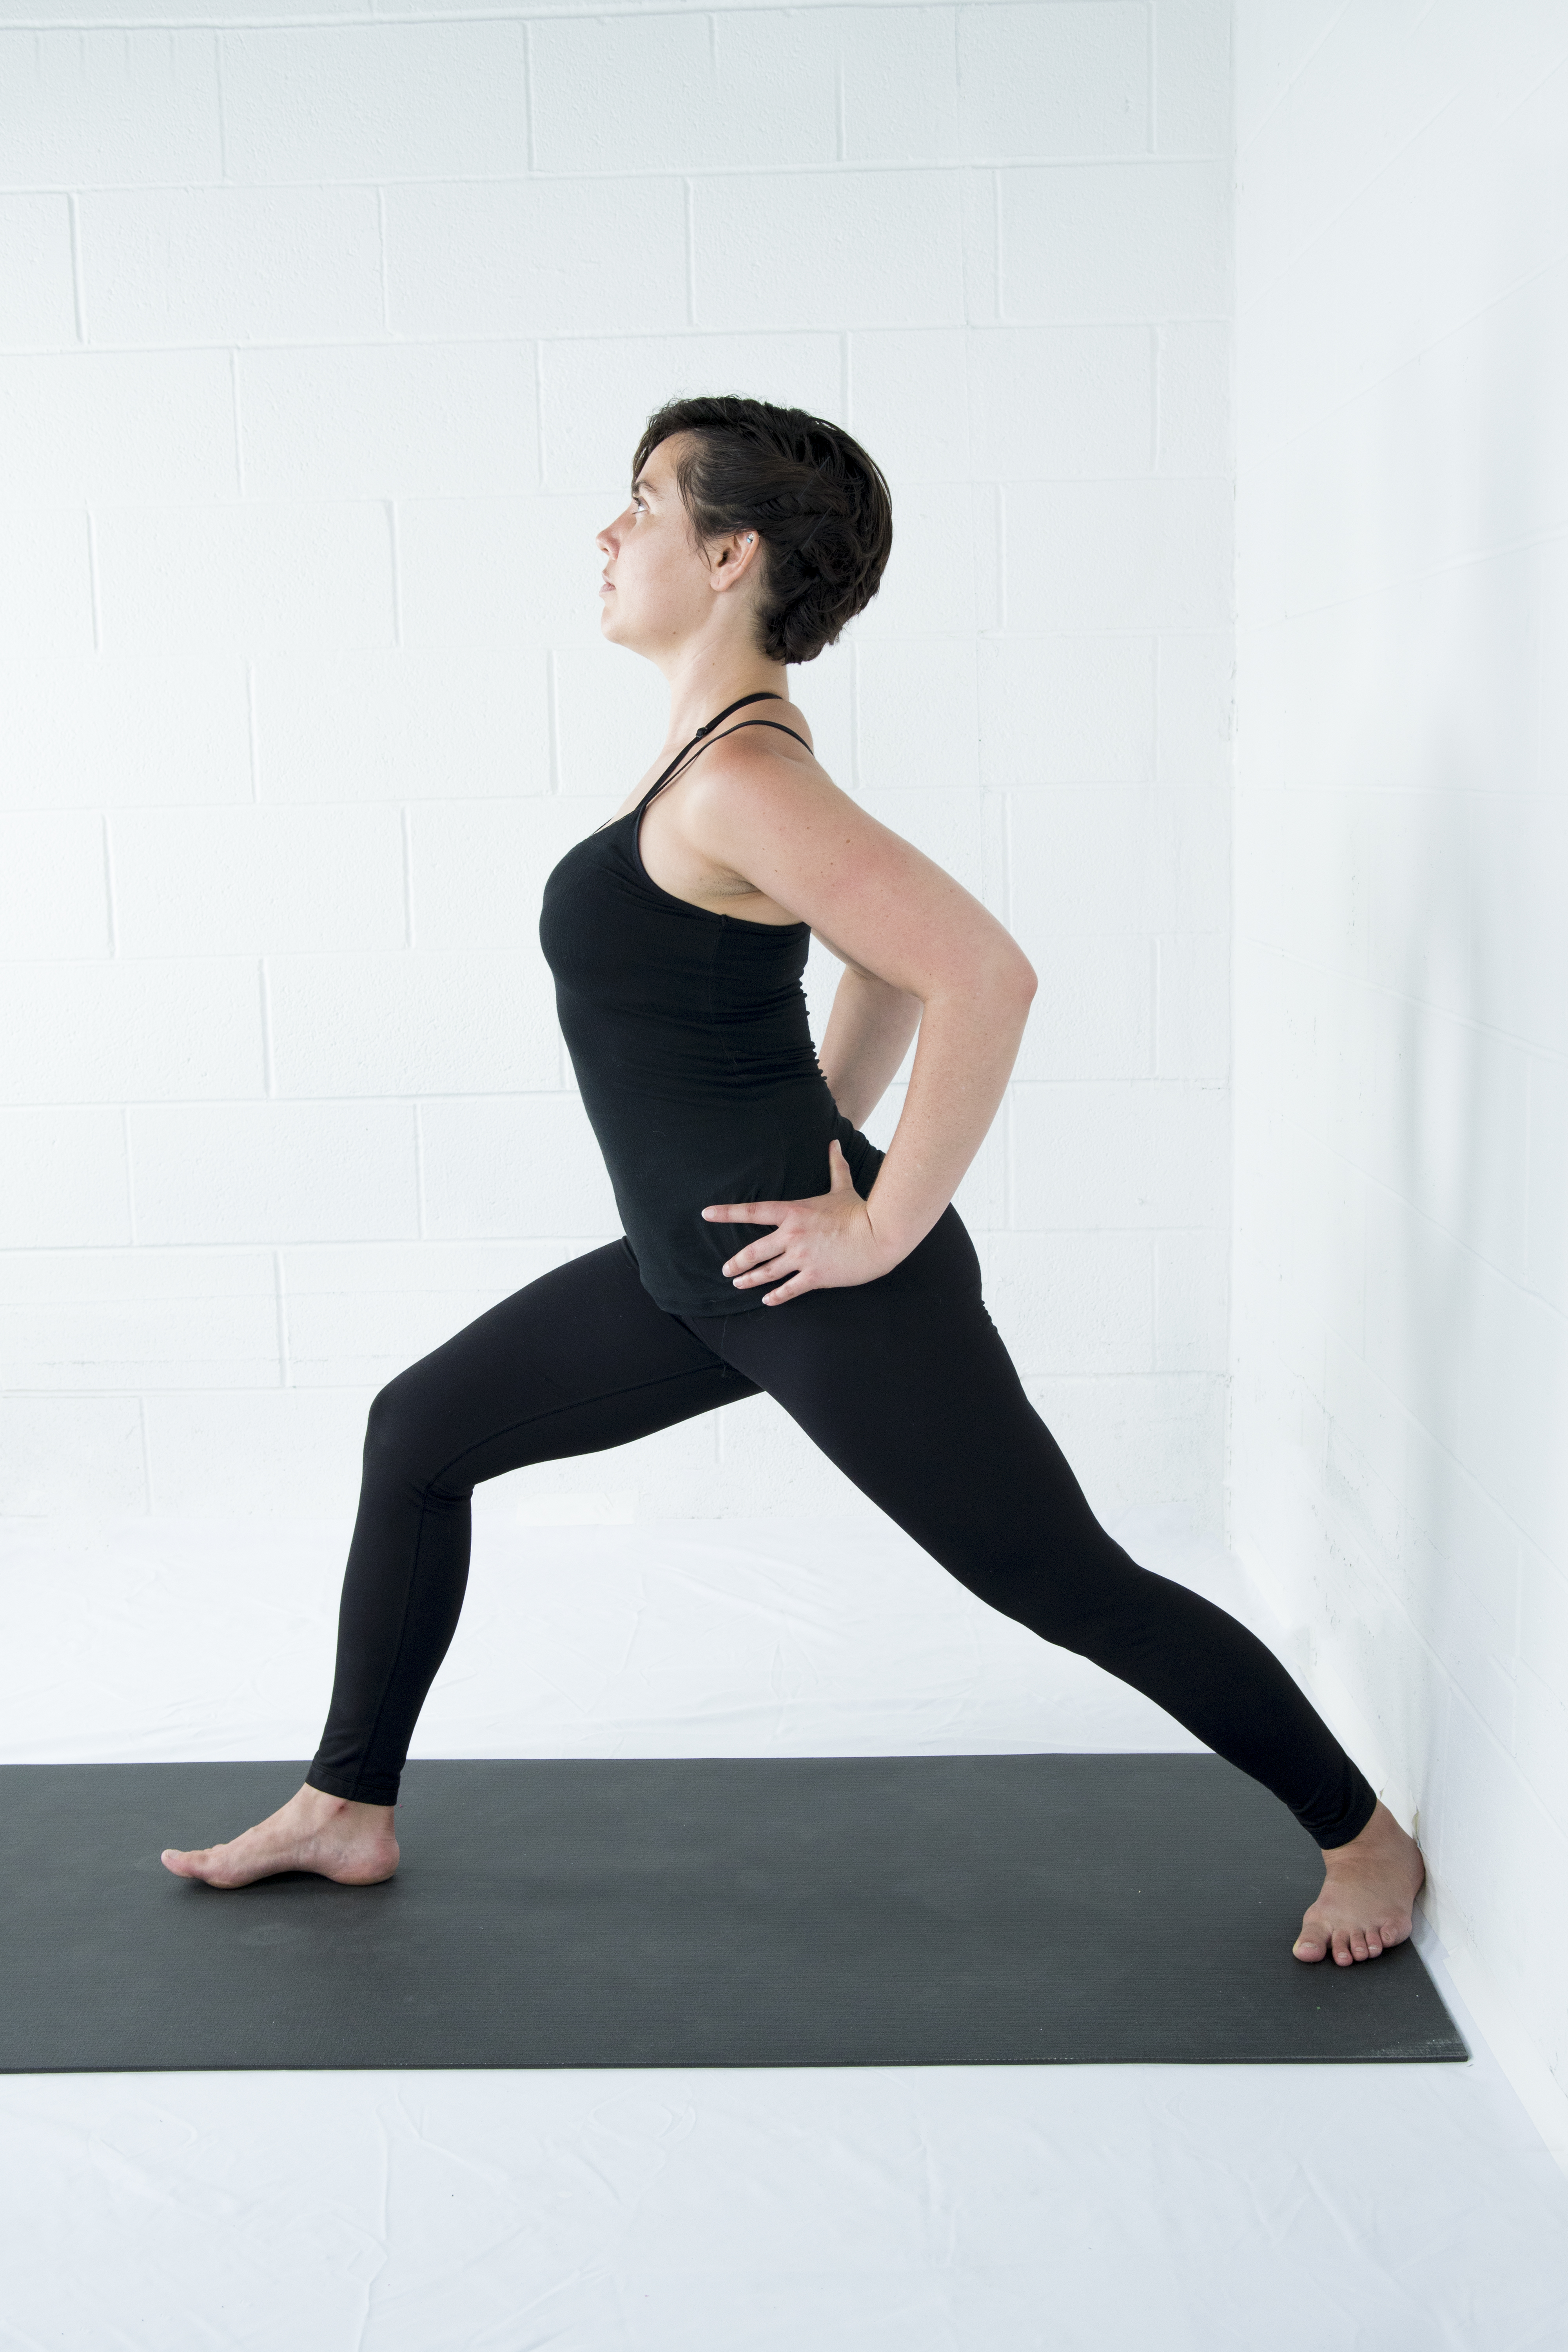 Virabhadrasana 1, Warrior 1, standing pose, strengthening pose, beginner's yoga, warrior 1 variations, yoga foe bone health and osteoporosis